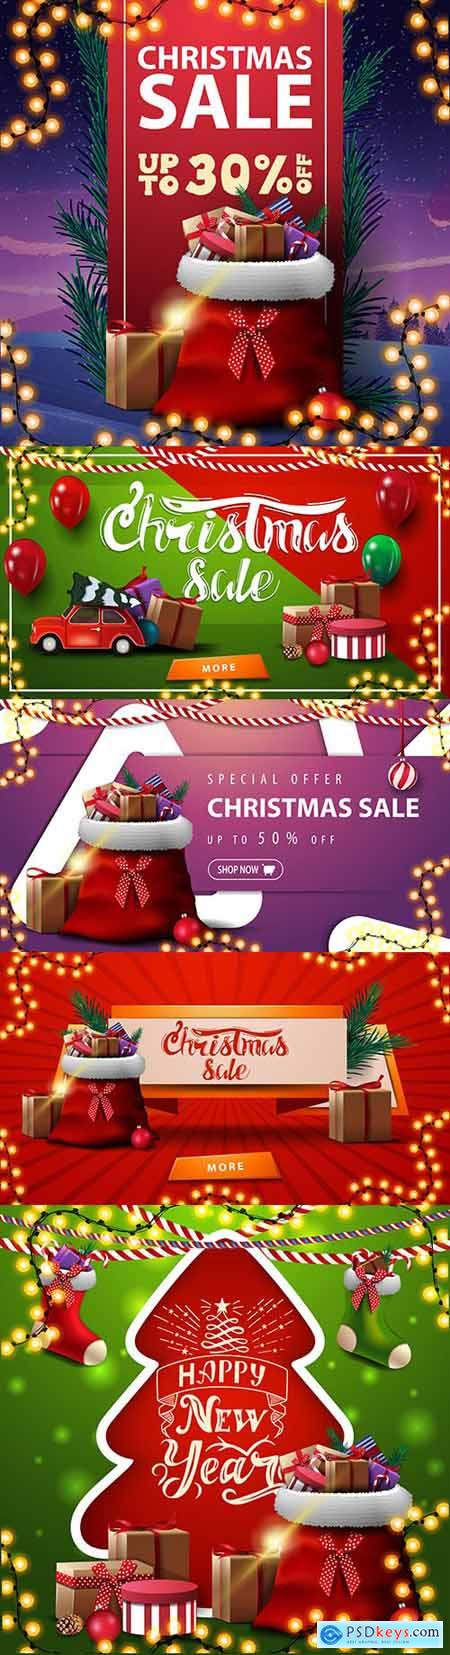 Christmas banner with red ribbon and garland discounted